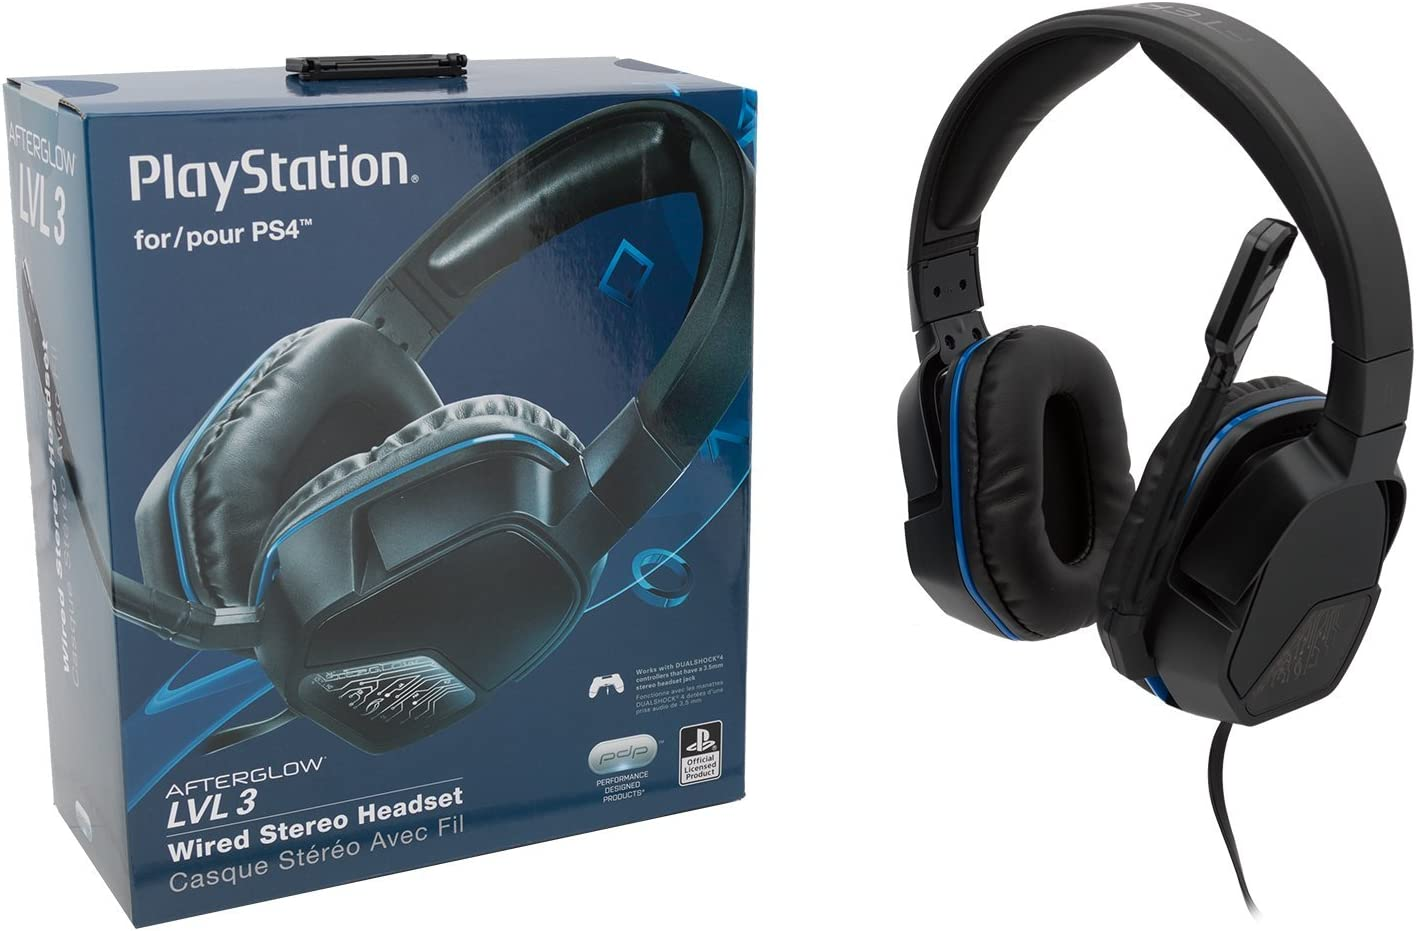 Sony Playstation Headset Wiring Diagram Libraries Mic Airplane Wireless Schematic Dataamazon Com Pdp Afterglow Lvl 3 Stereo